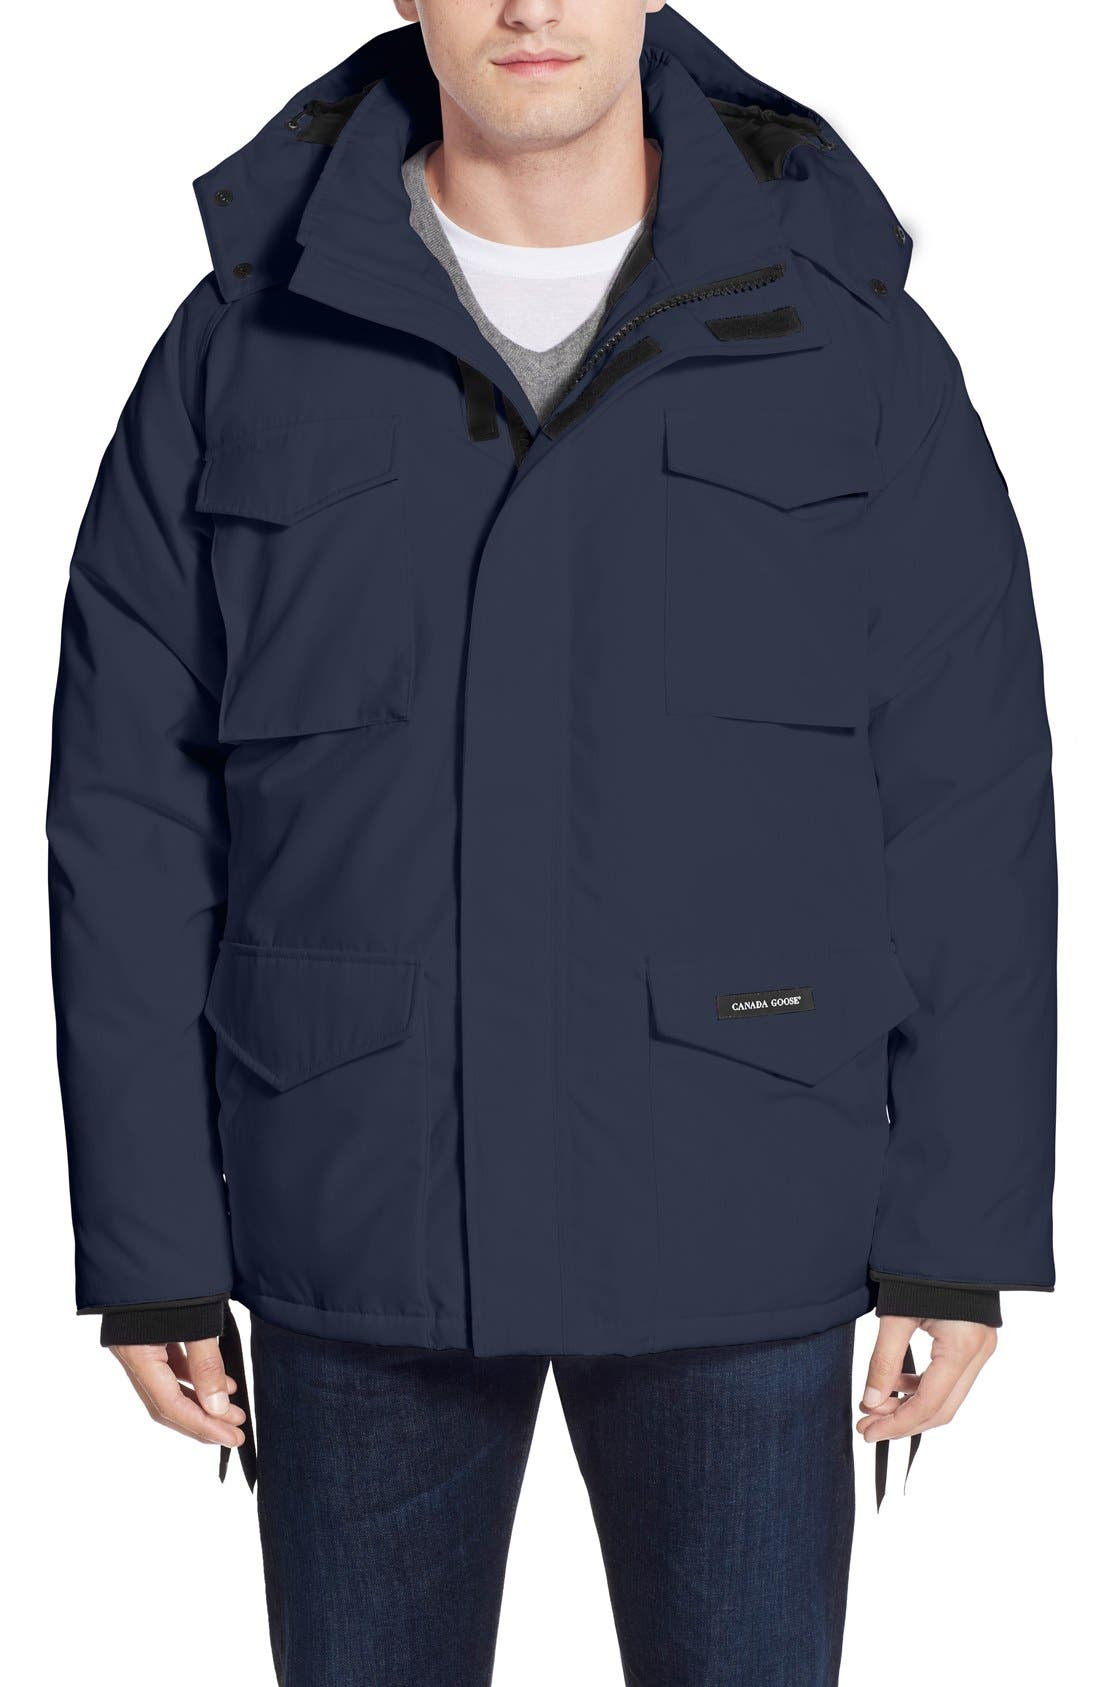 Alternate Image 1 Selected - Canada Goose 'Constable' Regular Fit Water Resistant Down Parka